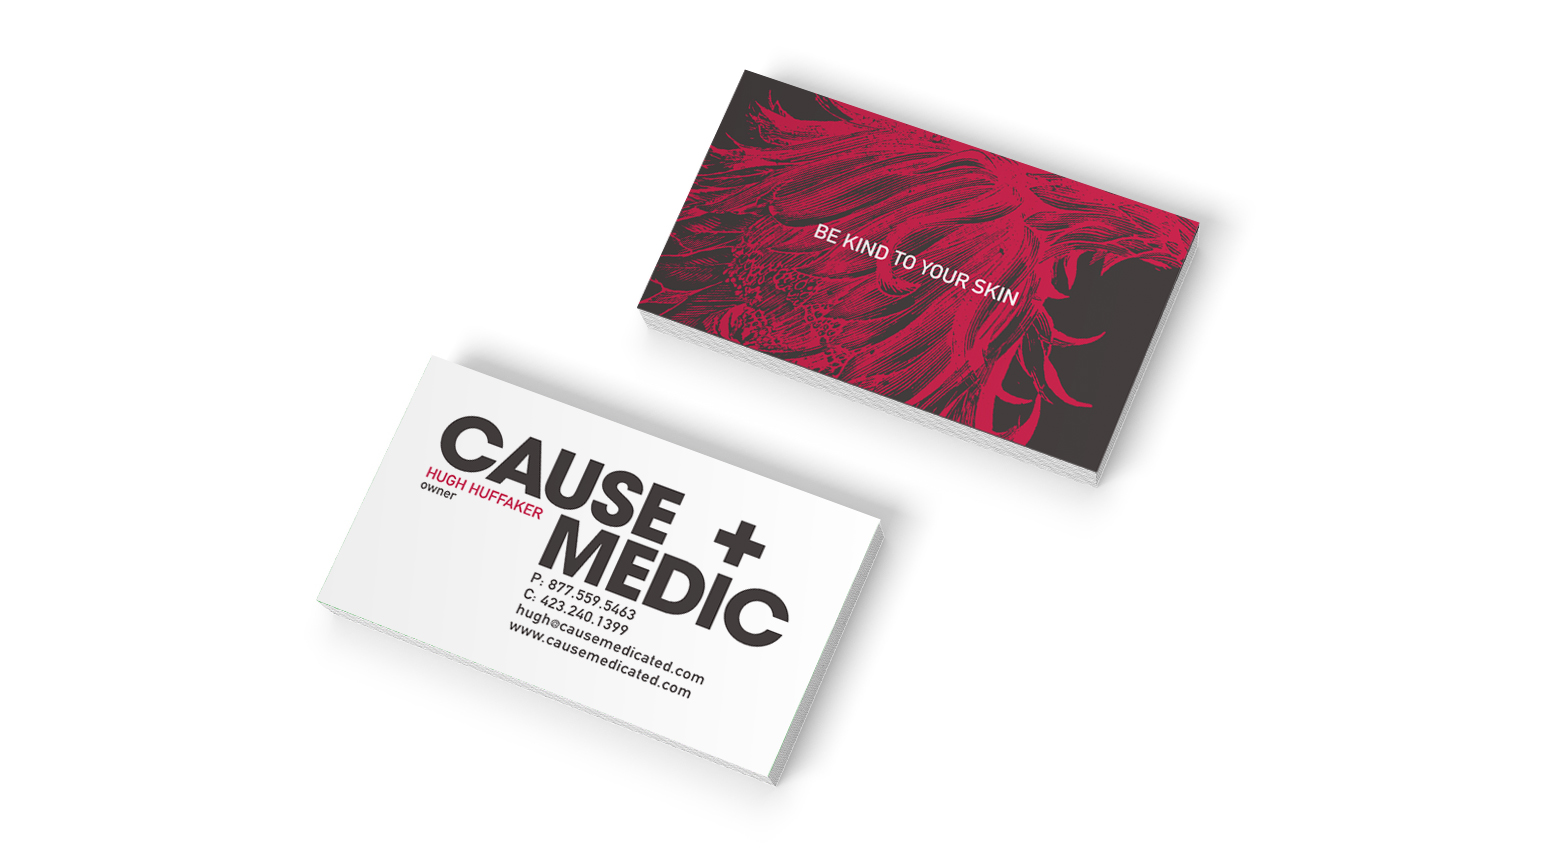 business card design for cause medic